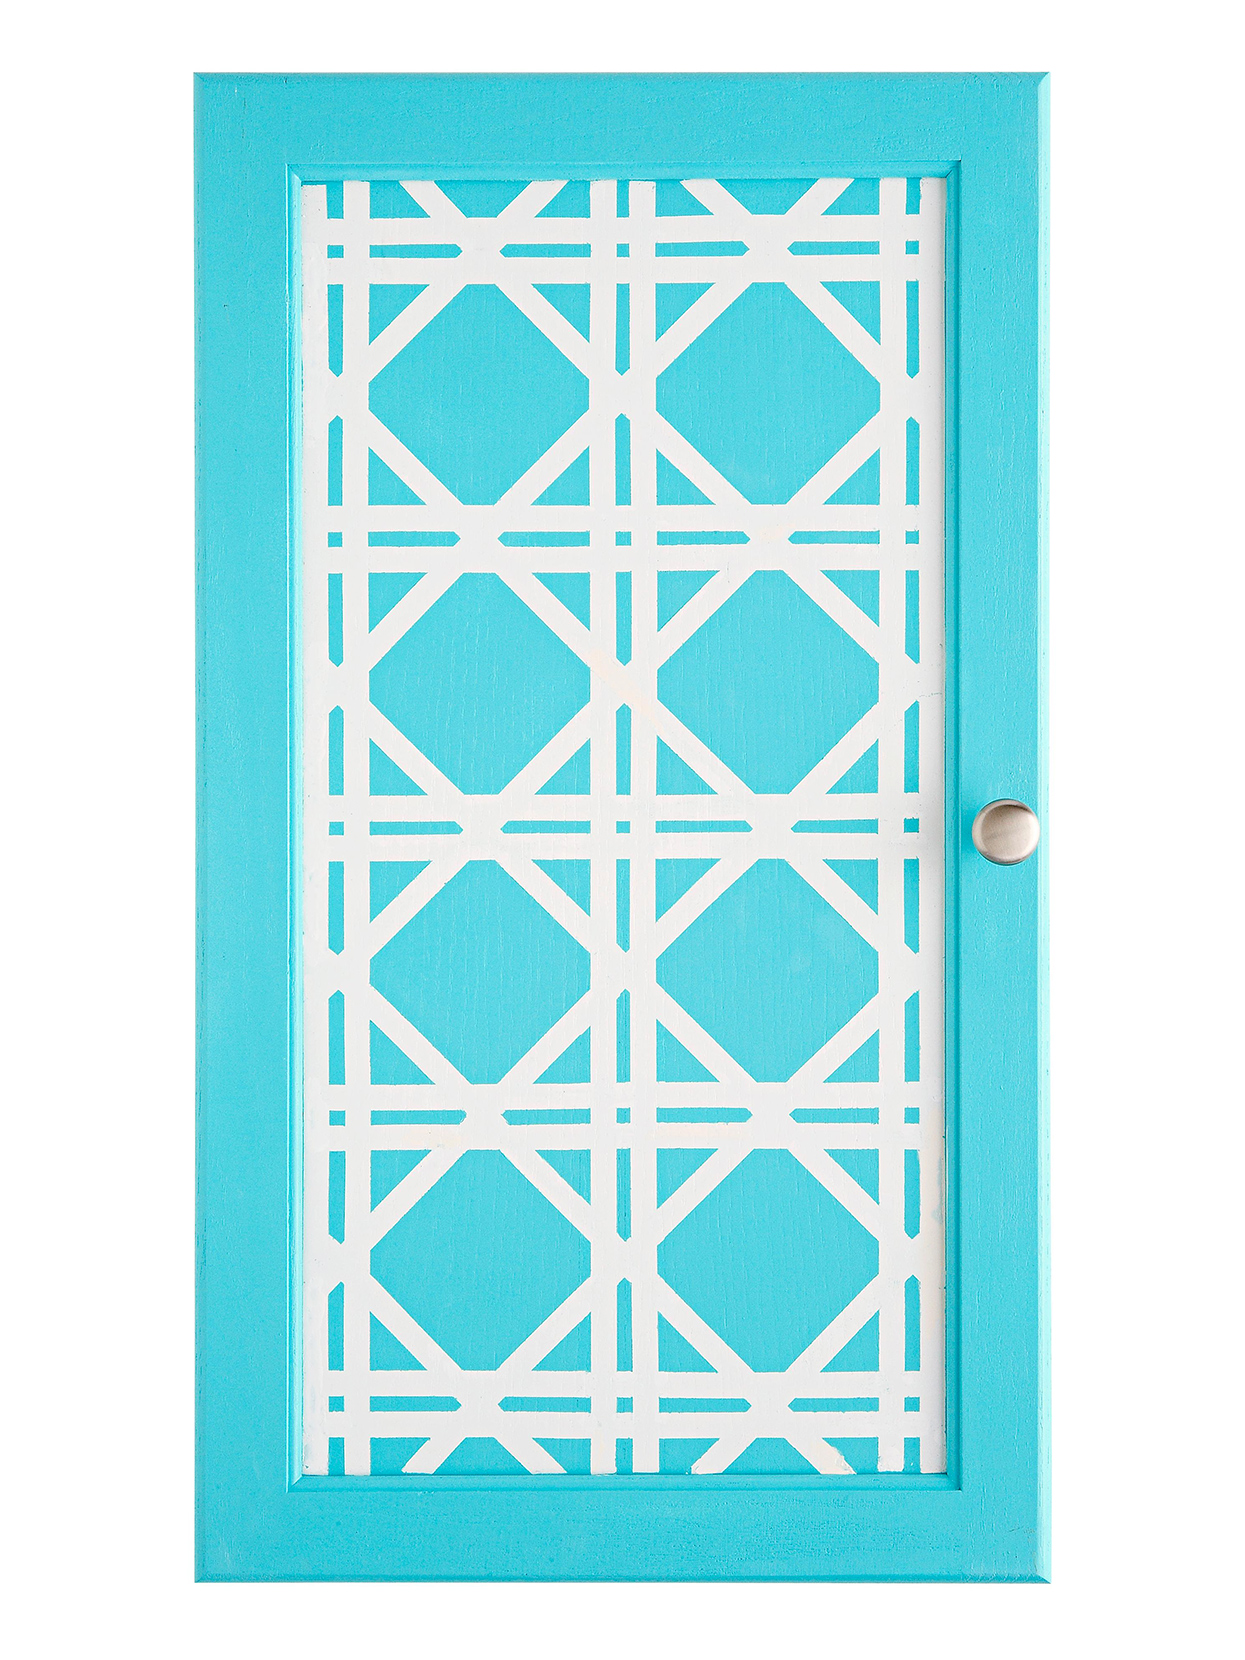 robin's egg blue cabinet with white lattice design